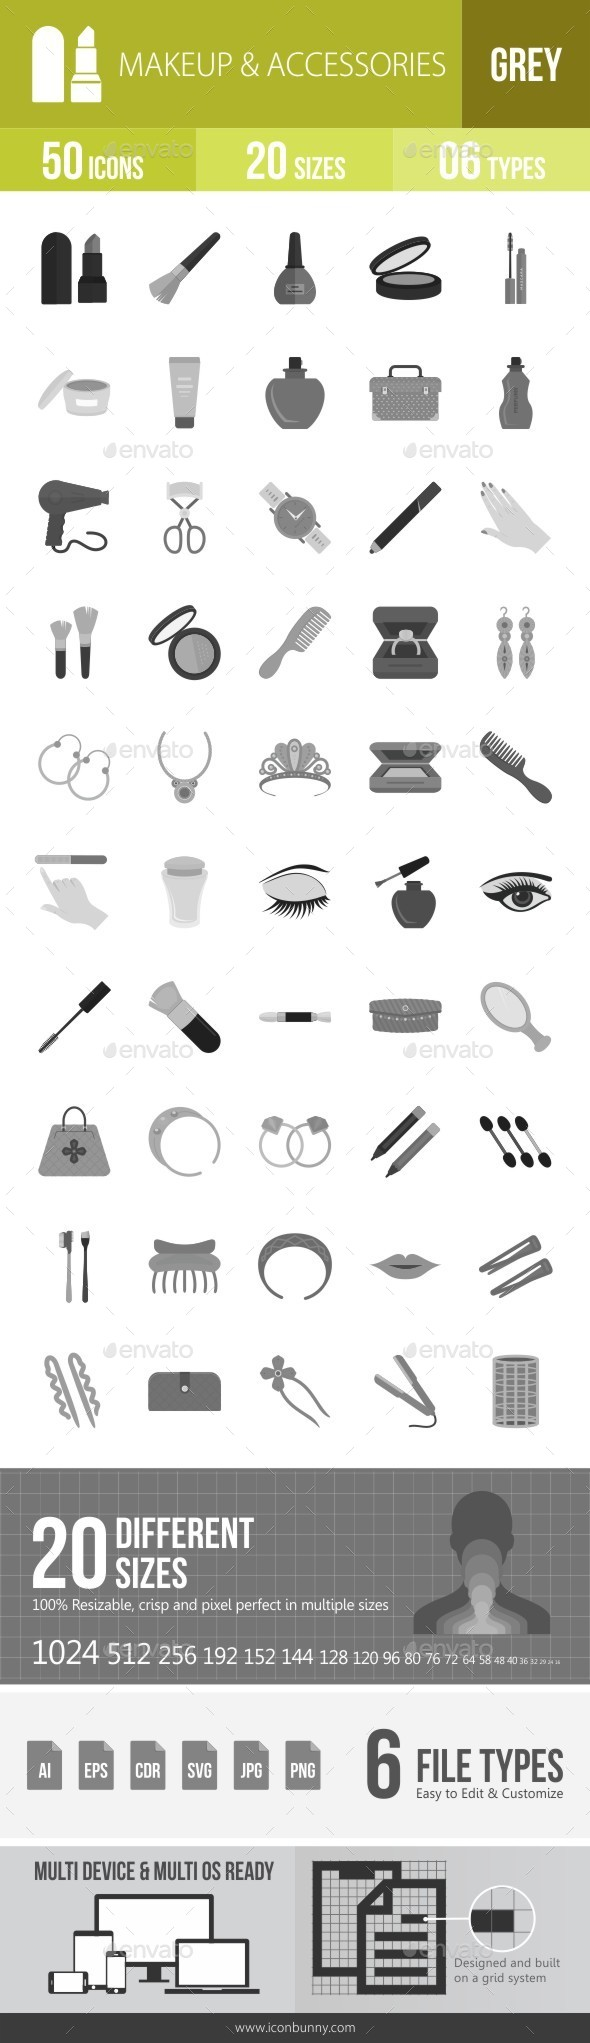 Makeup & Accessories Greyscale Icons - Icons